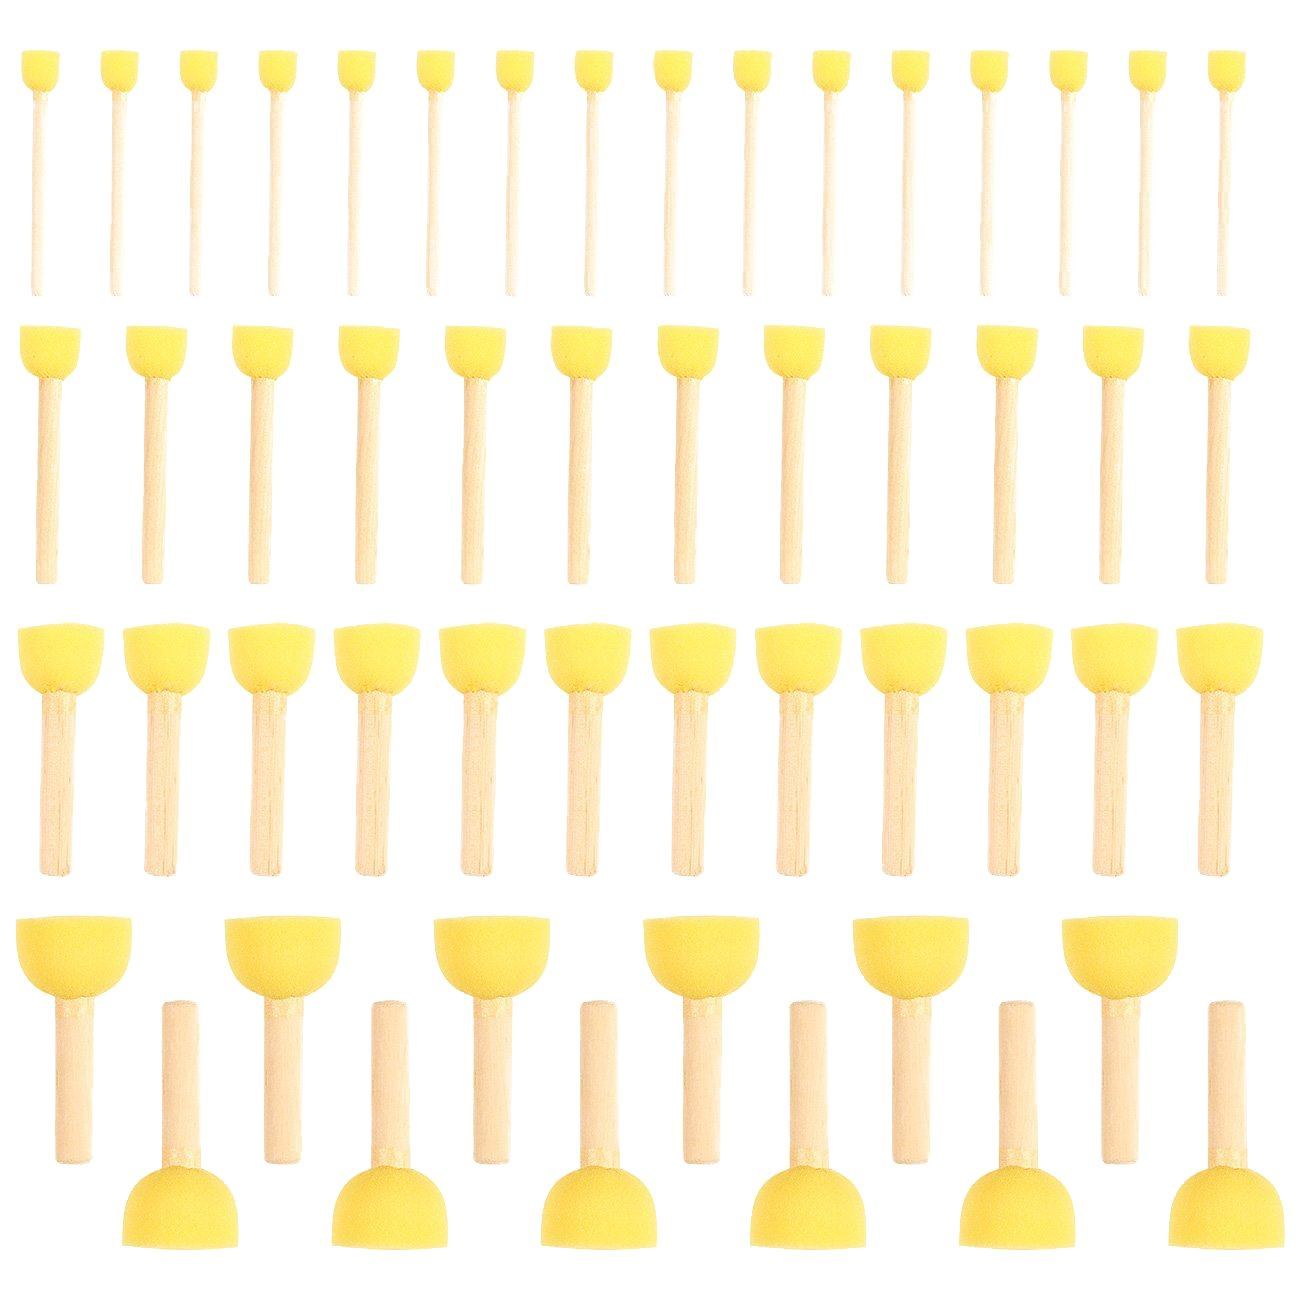 Pack of 50 Round Foam Sponge Paint Brush Set - Stencil Brush Value Pack - 4 Different Sizes - Great for Kids Arts and Crafts, Stencils, Painting Juvale